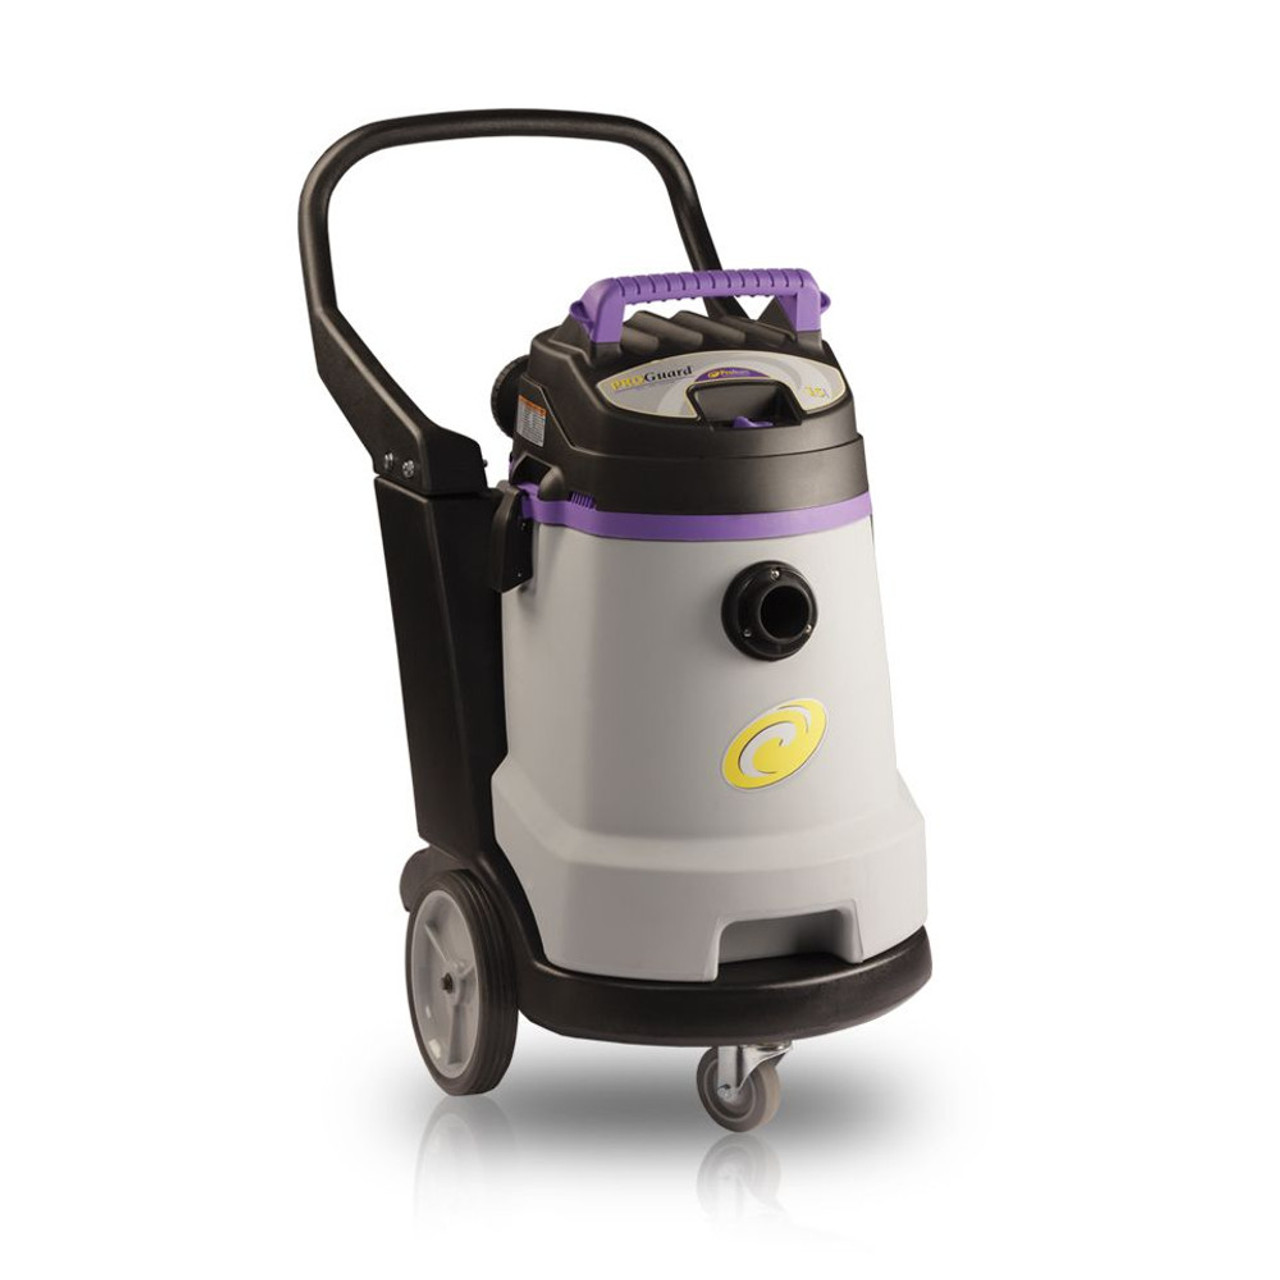 The compact size and wheel configuration make the ProGuard 15 one of the most maneuverable wet/dry vacs on the market.